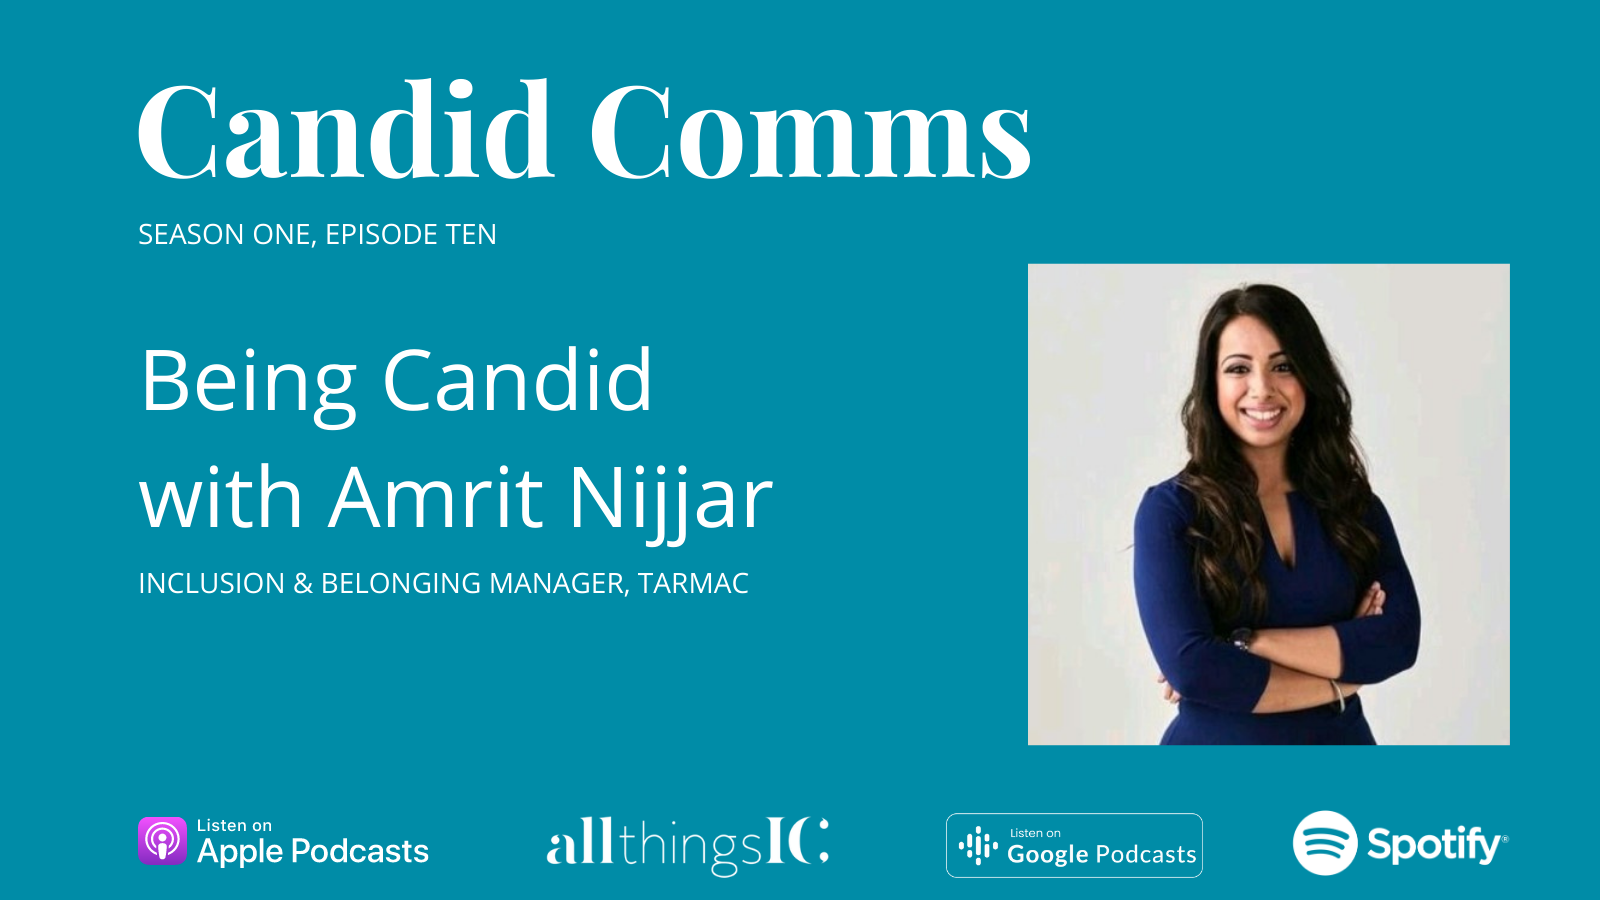 Podcast: Being Candid with Amrit Nijjar